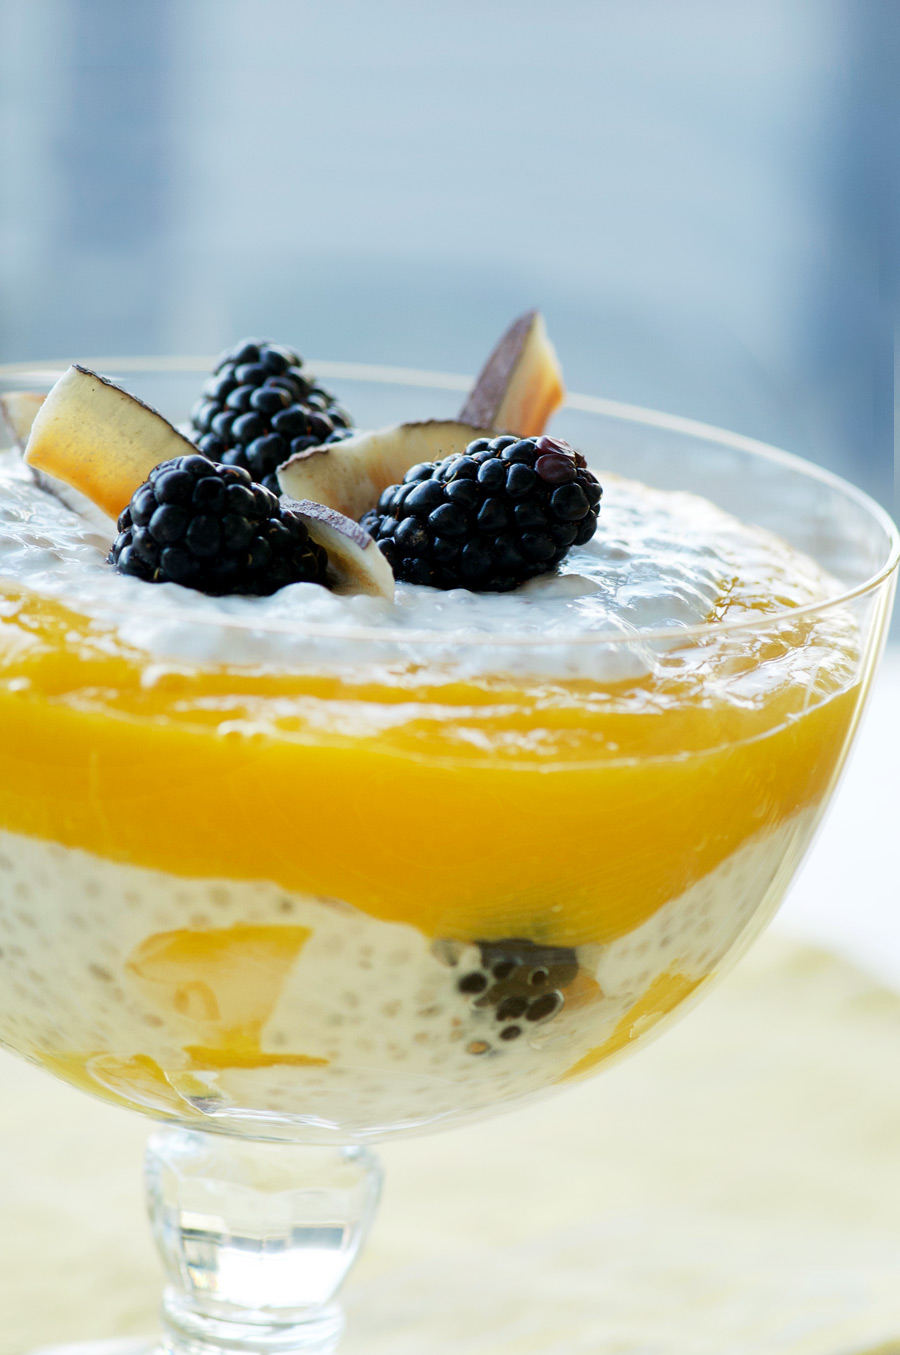 Berries, chia seed pudding and mango are layered into a healthy breakfast